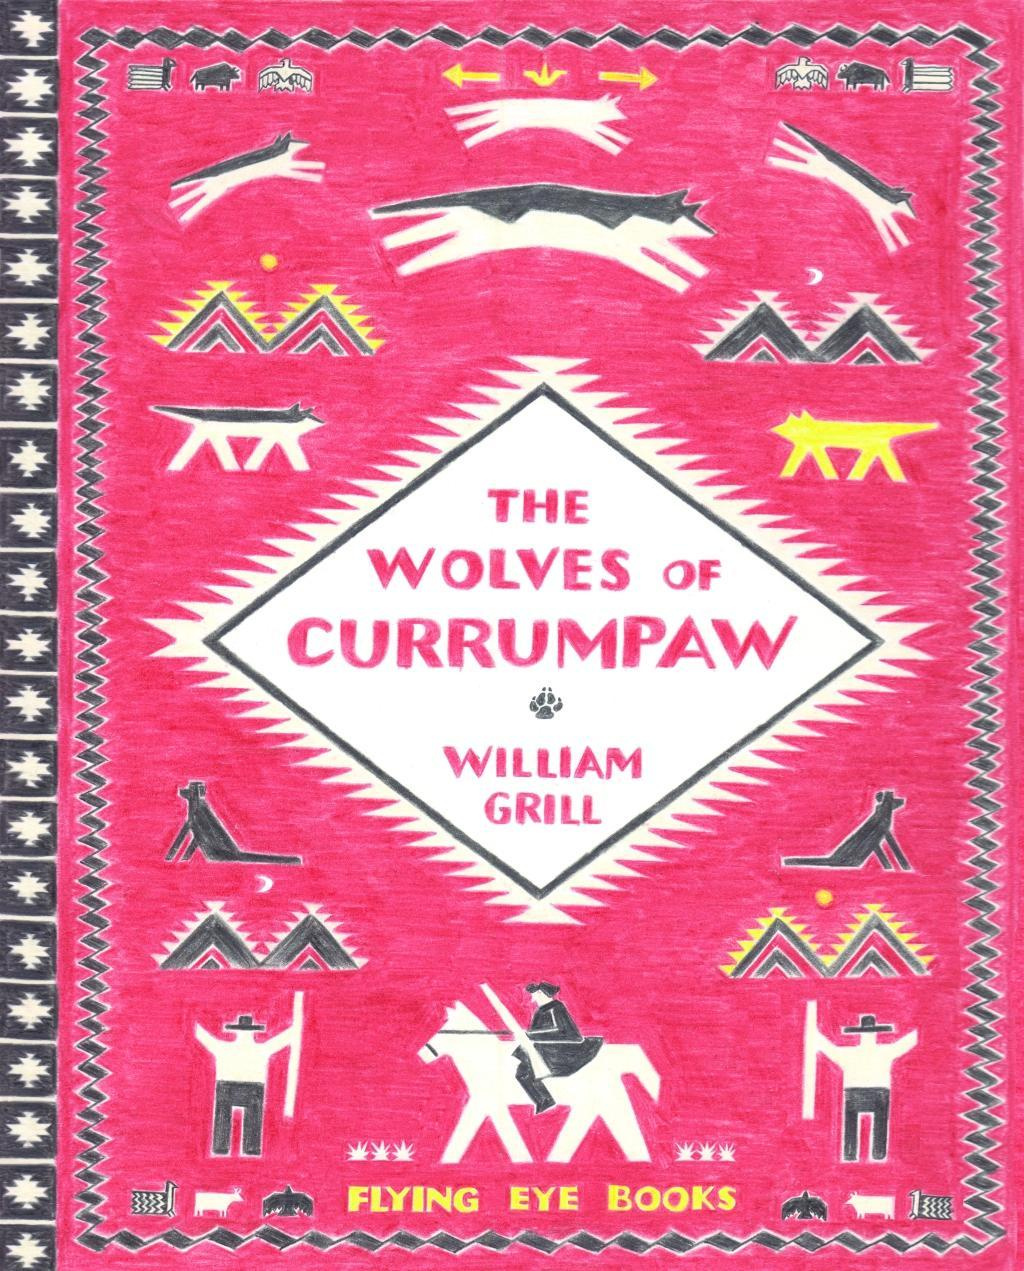 The Wolves of Currumpaw by William Grill, ISBN: 9781909263833